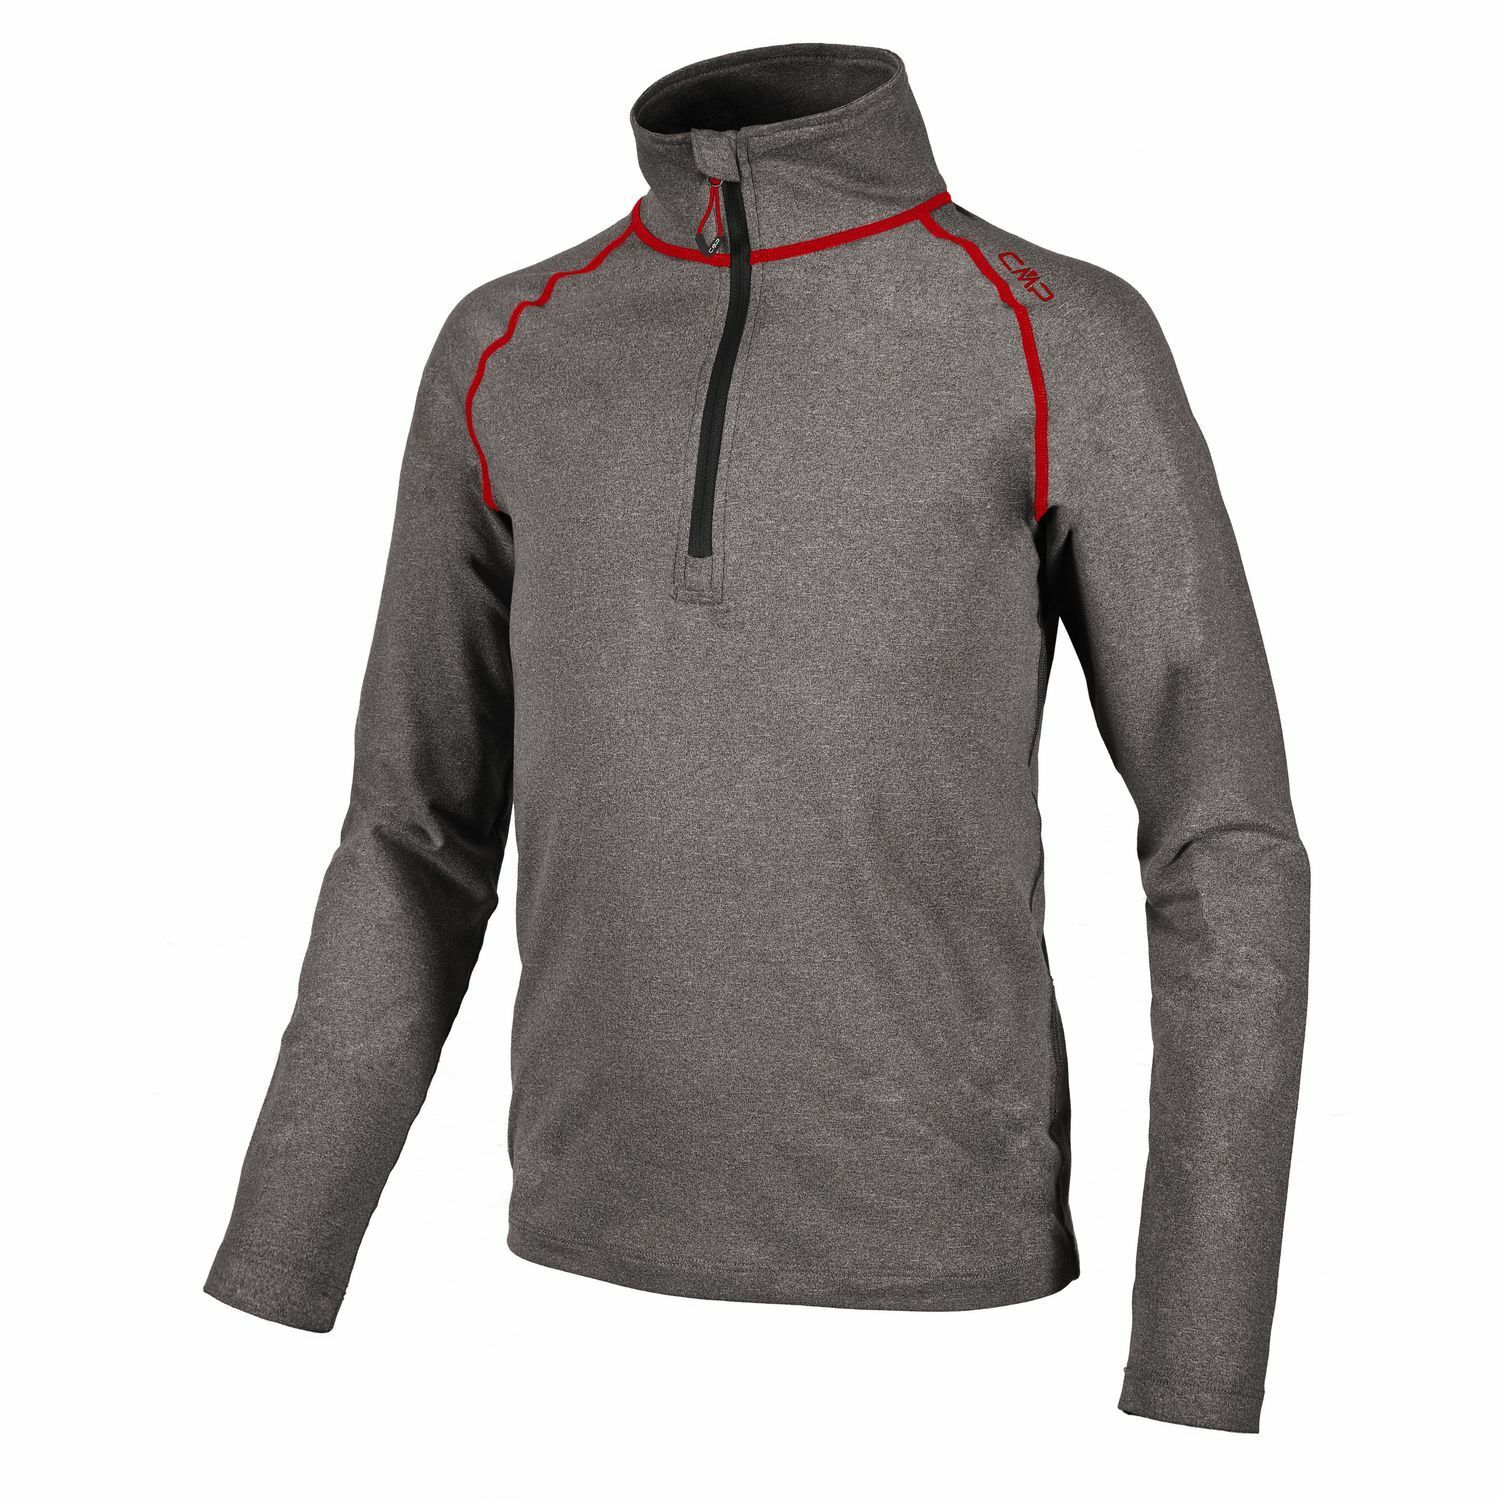 CMP Sweatshirt Function  Top Grey Collar Stretch Softech Half-Zip  we take customers as our god